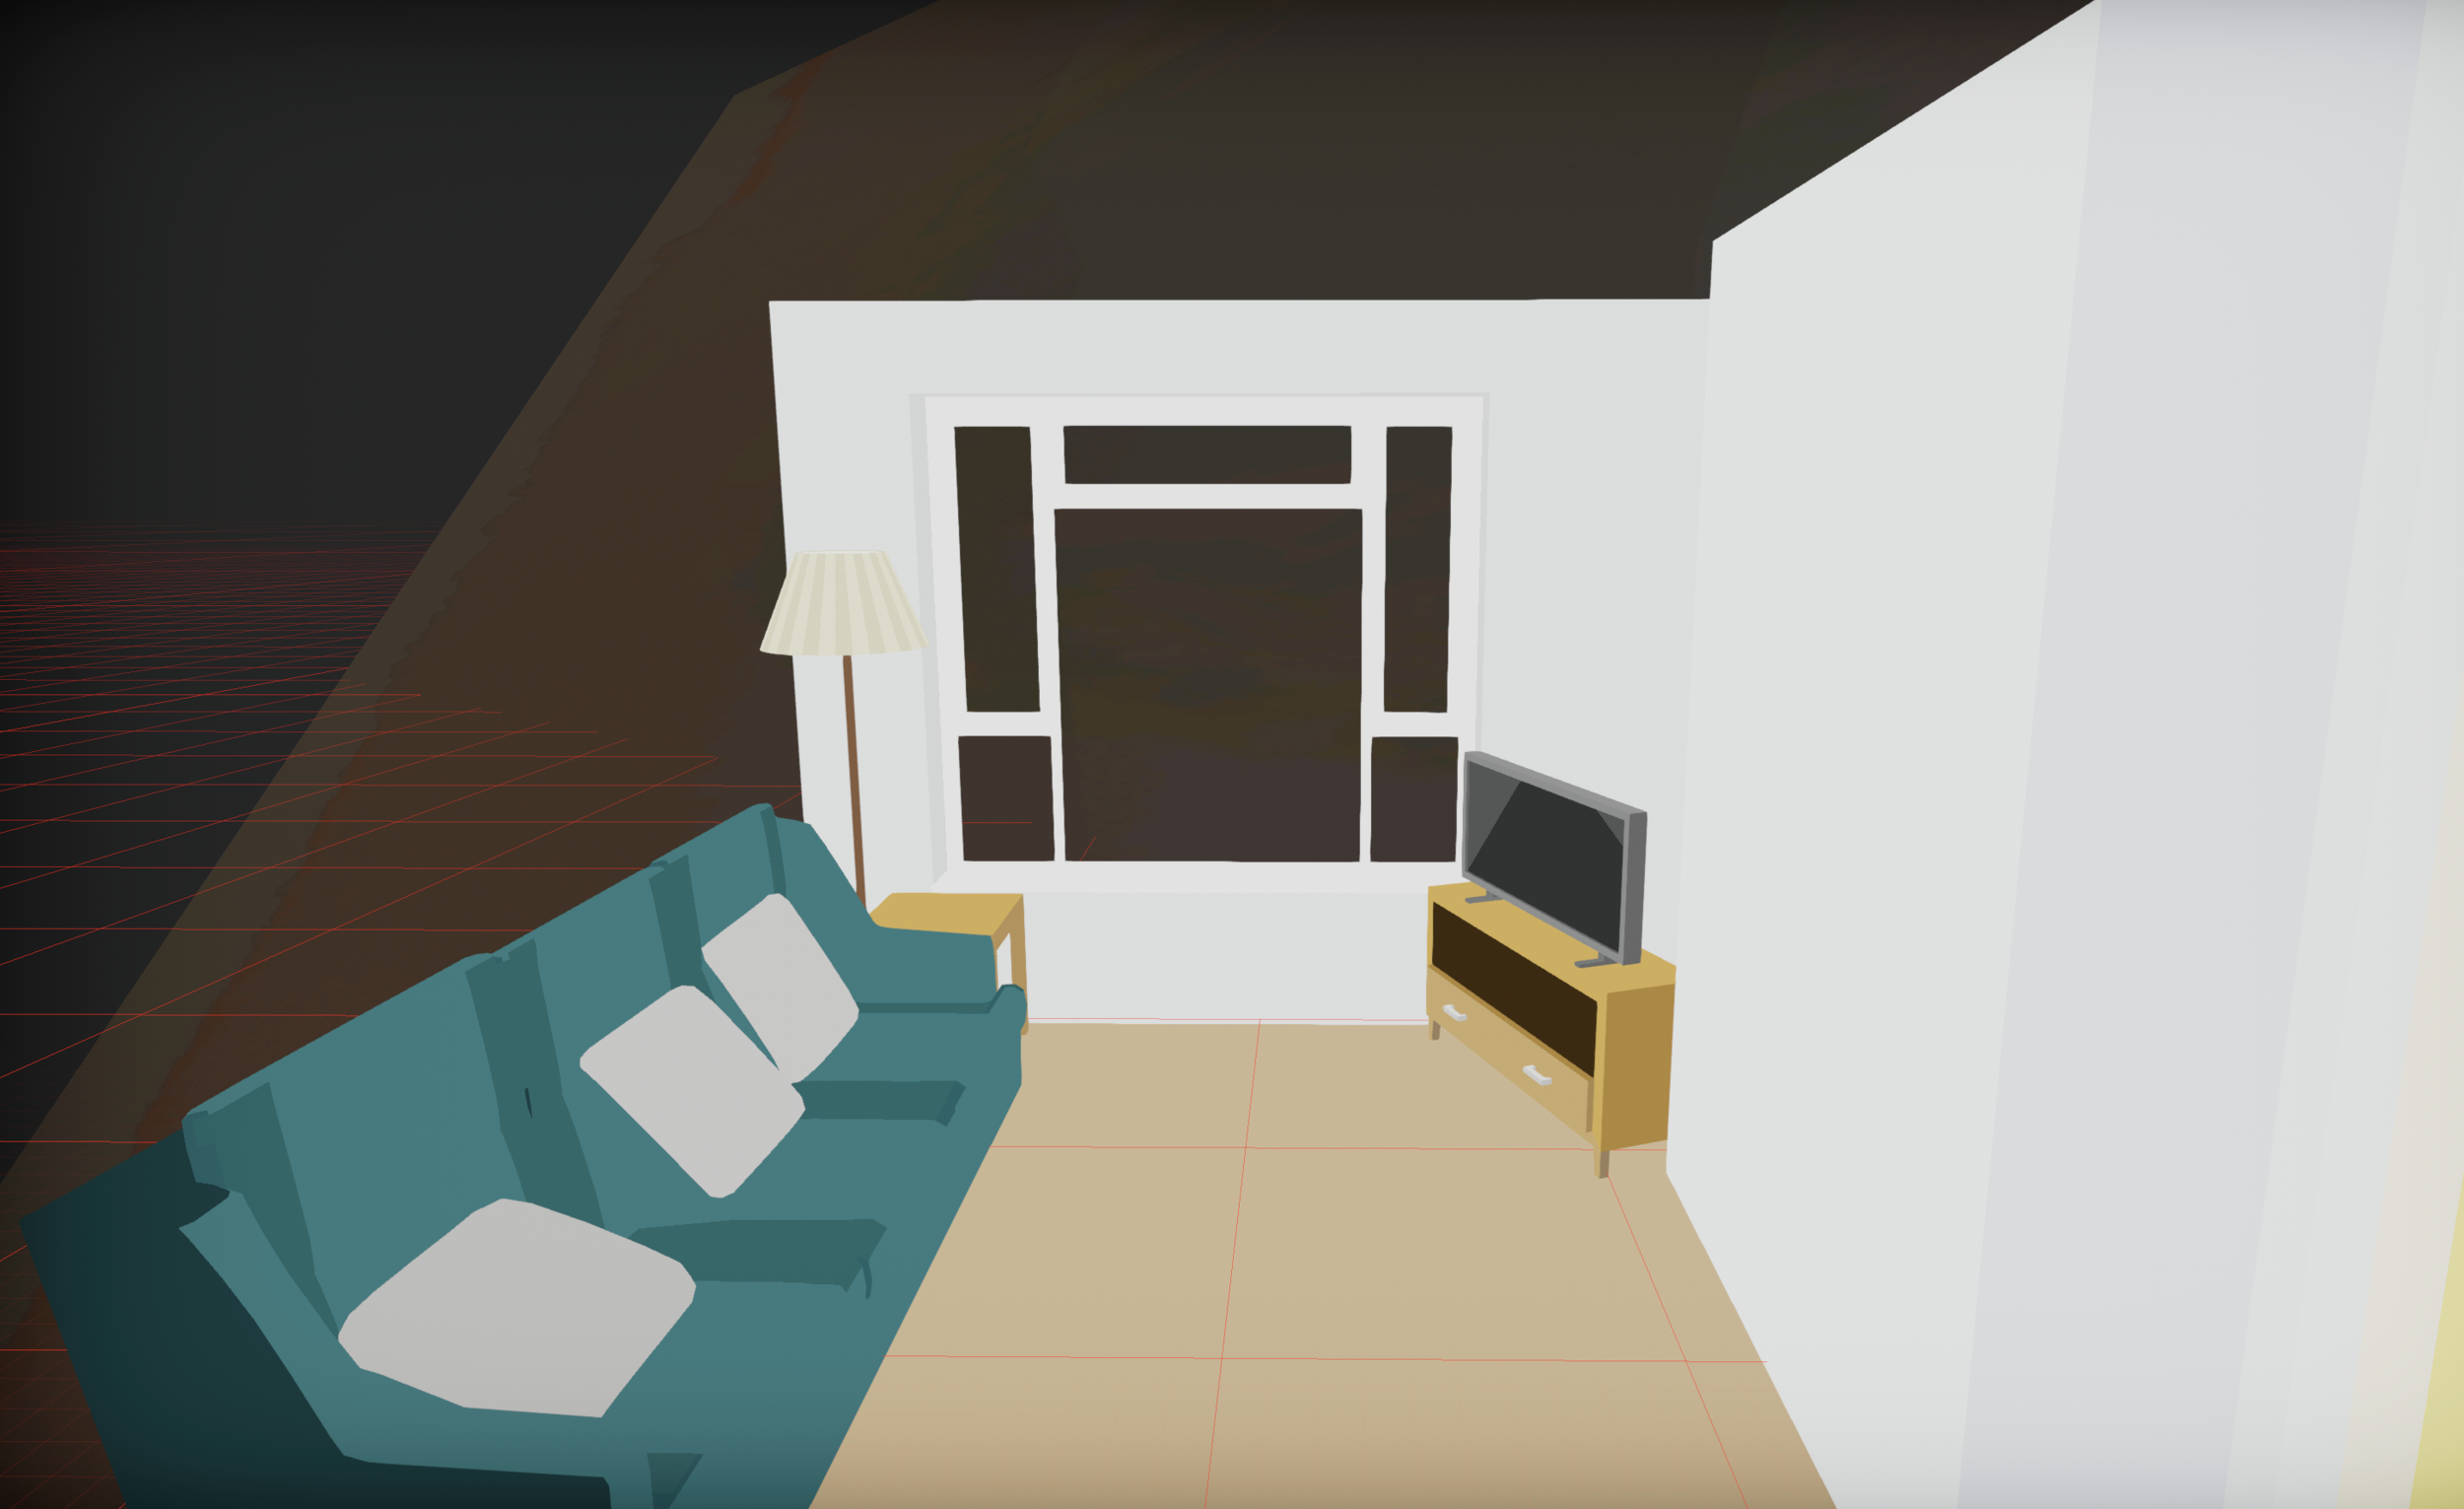 Living room in game